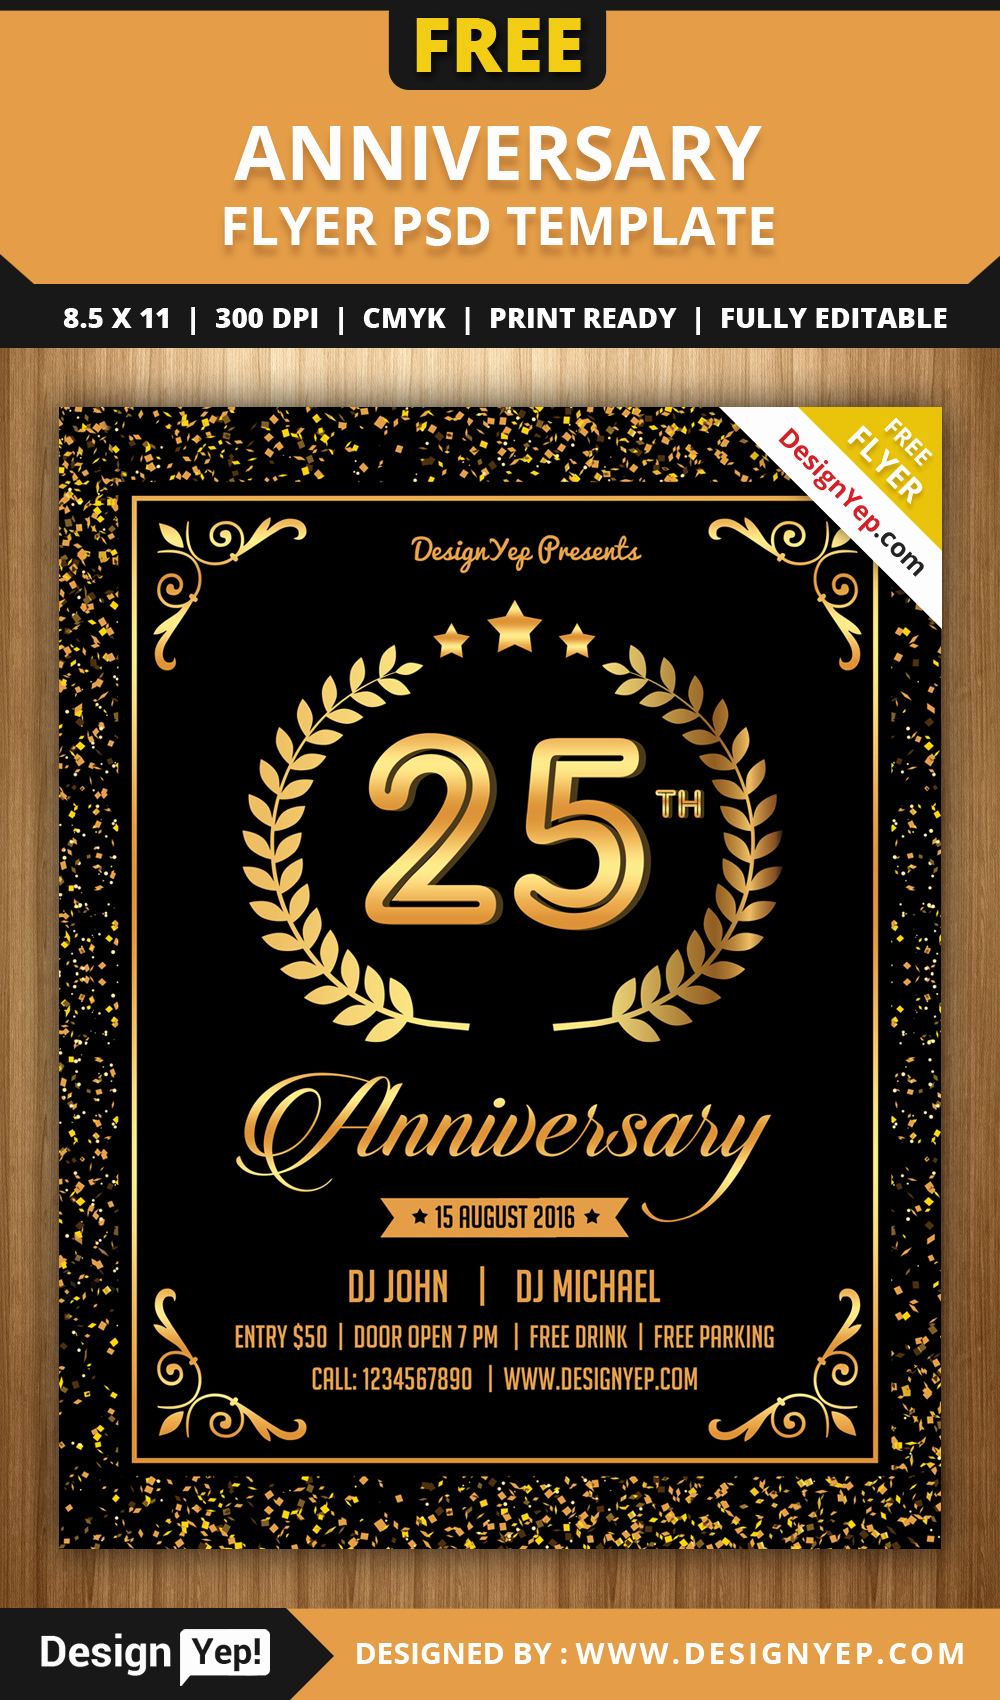 Free Download Flyer Templates Luxury Free Anniversary Party Flyer Psd Template Designyep